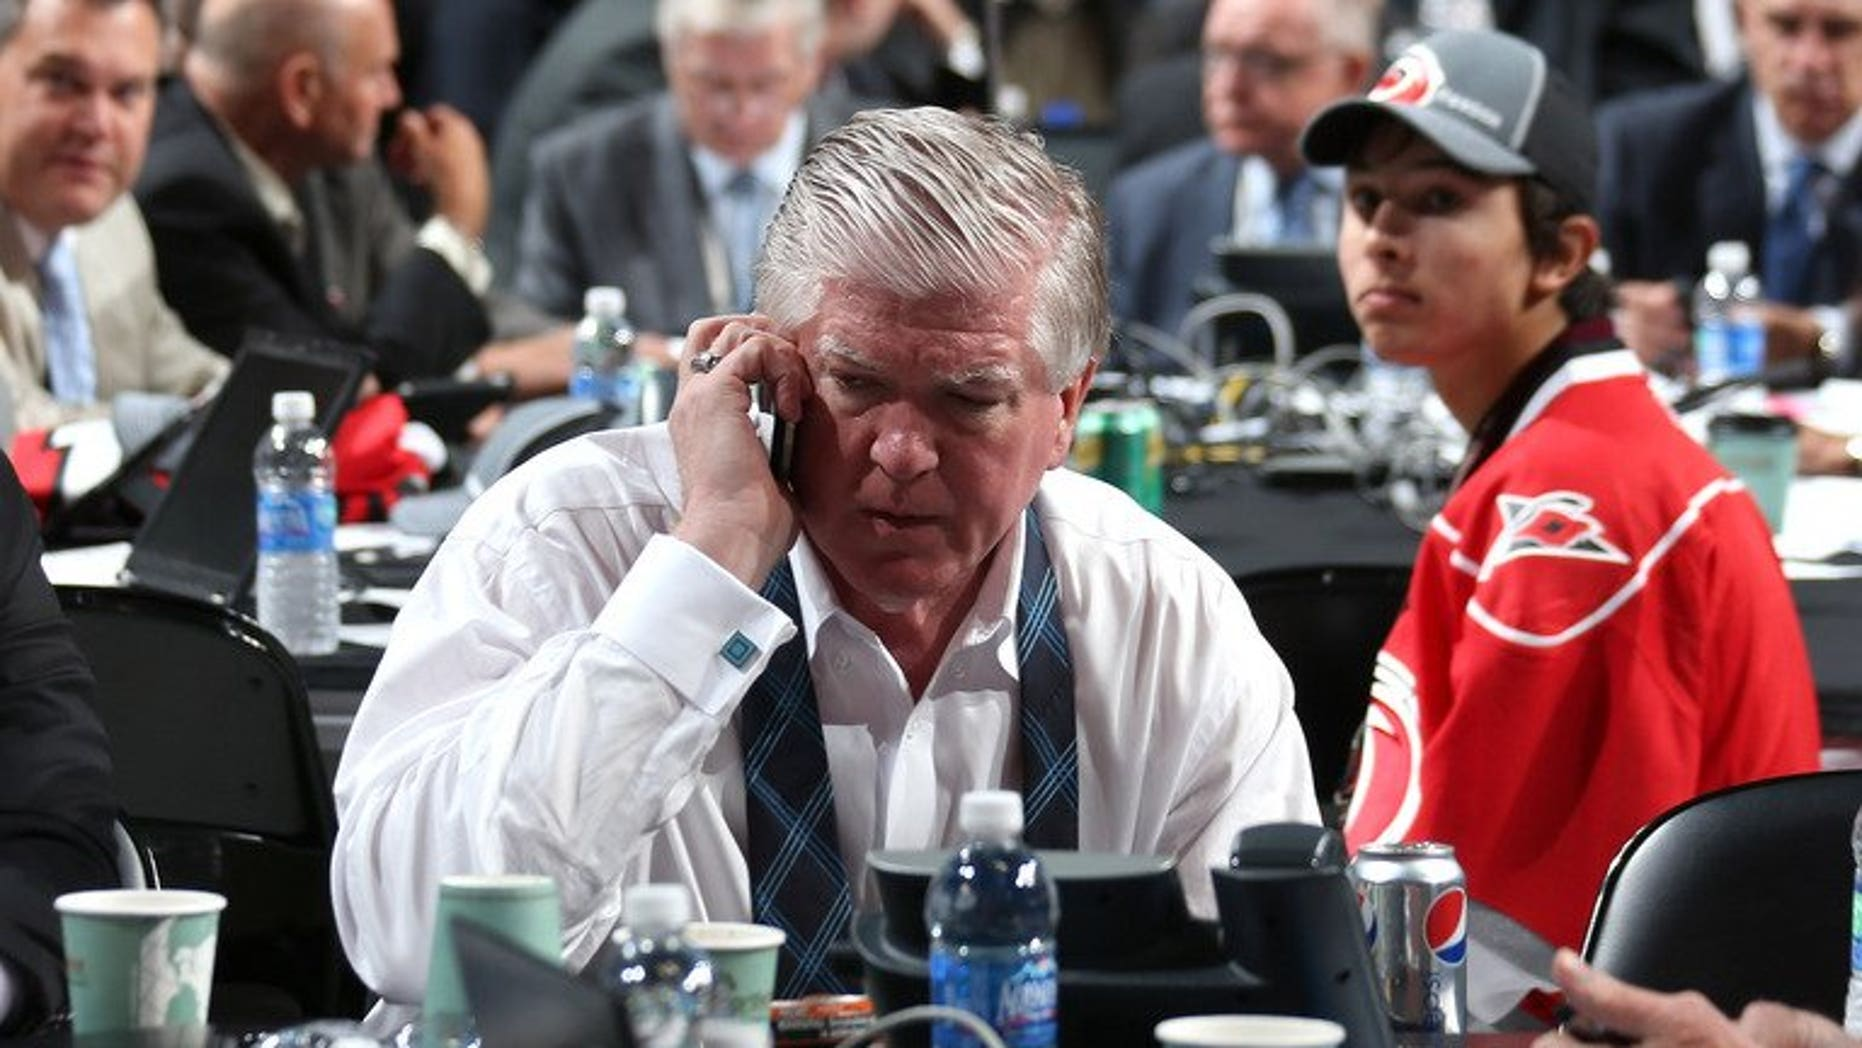 Then Toronto Maple Leafs General Manager Brian Burke, pictured at Consol Energy Center in Pittsburgh, Pennsylvania, on June 23, 2012. Burke, who helped assemble the 2007 Anaheim Ducks' Stanley Cup winning team, has been hired as the president of hockey operations for the Calgary Flames, according to the team.